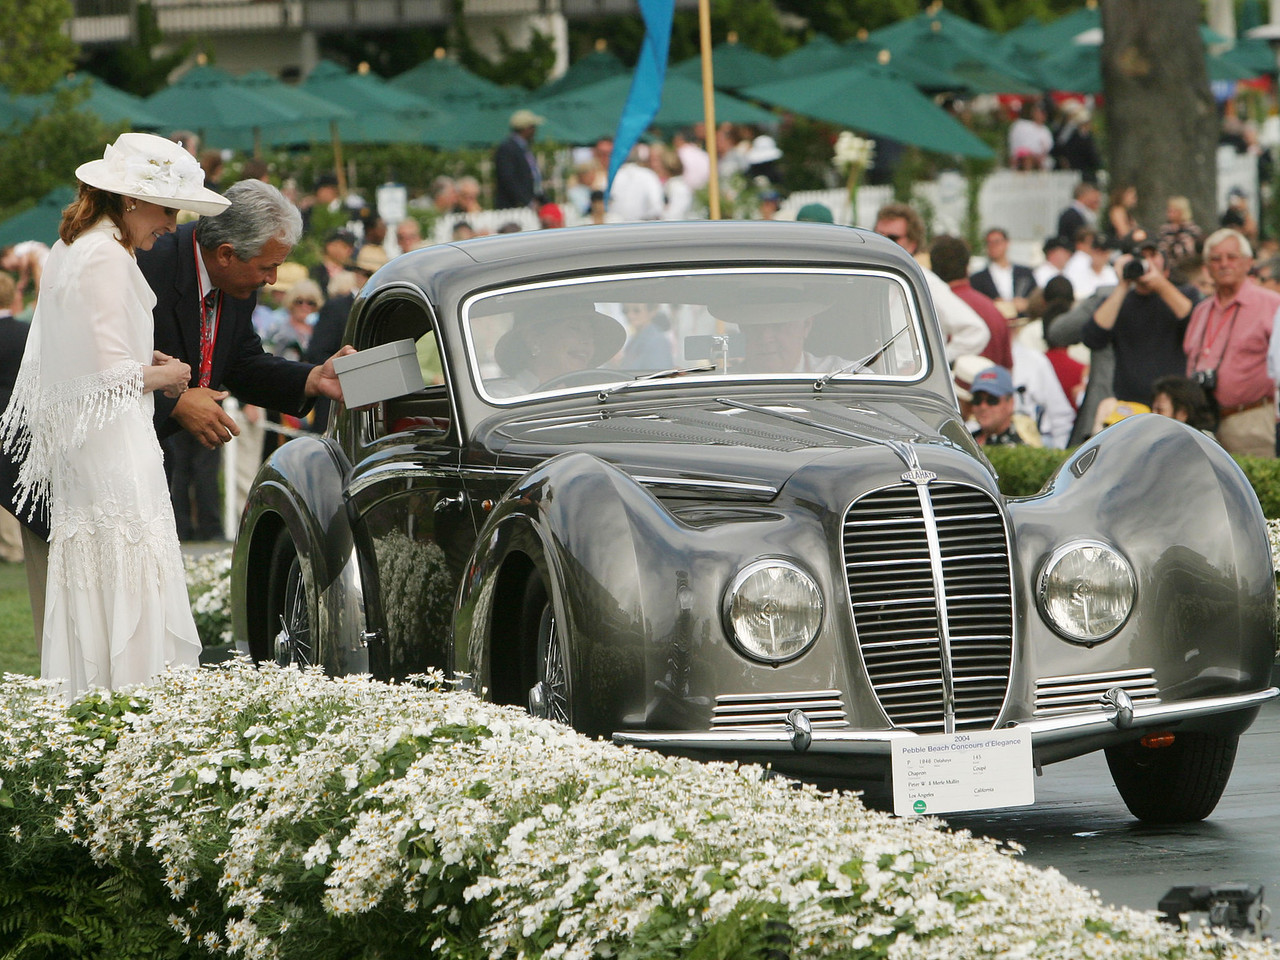 1946 Delahaye 145 Chapron Coupé.  J.B. Nethercutt Most Elegant Closed Car Trophy.  Peter and Merle Mullin.